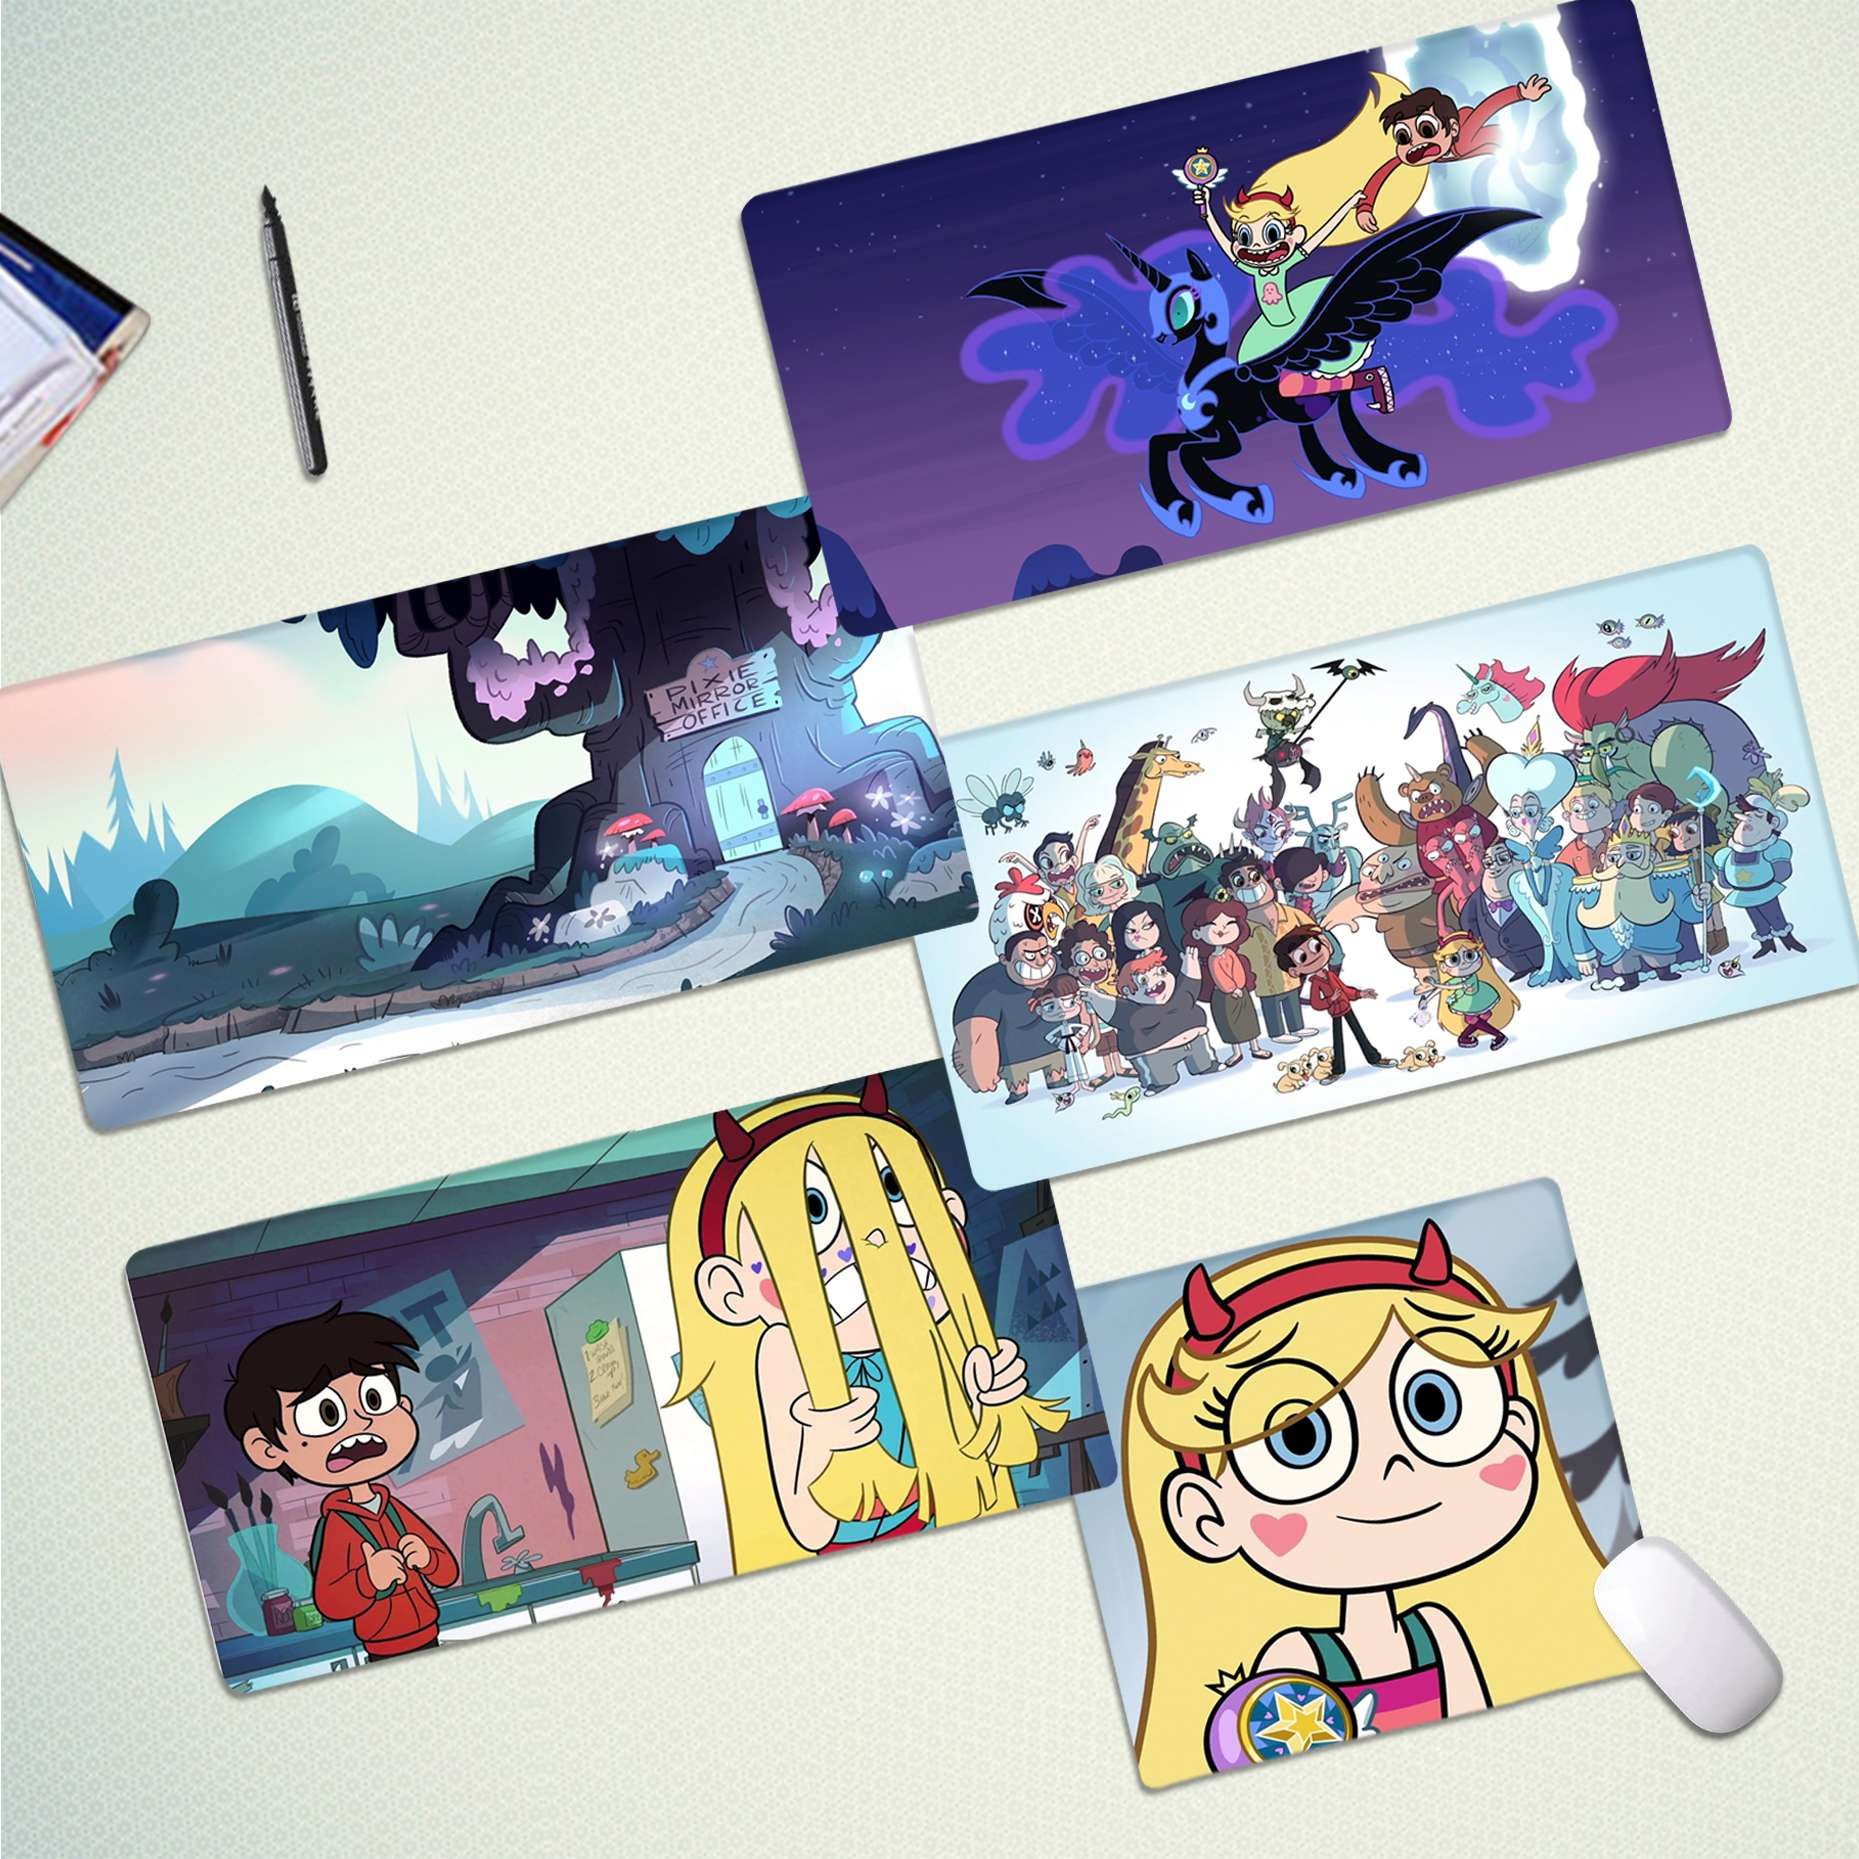 Maiya New Design Anime Star Vs The Forces Of Evil Laptop Computer Mousepad Free Shipping Large Mouse Pad Keyboards Mat